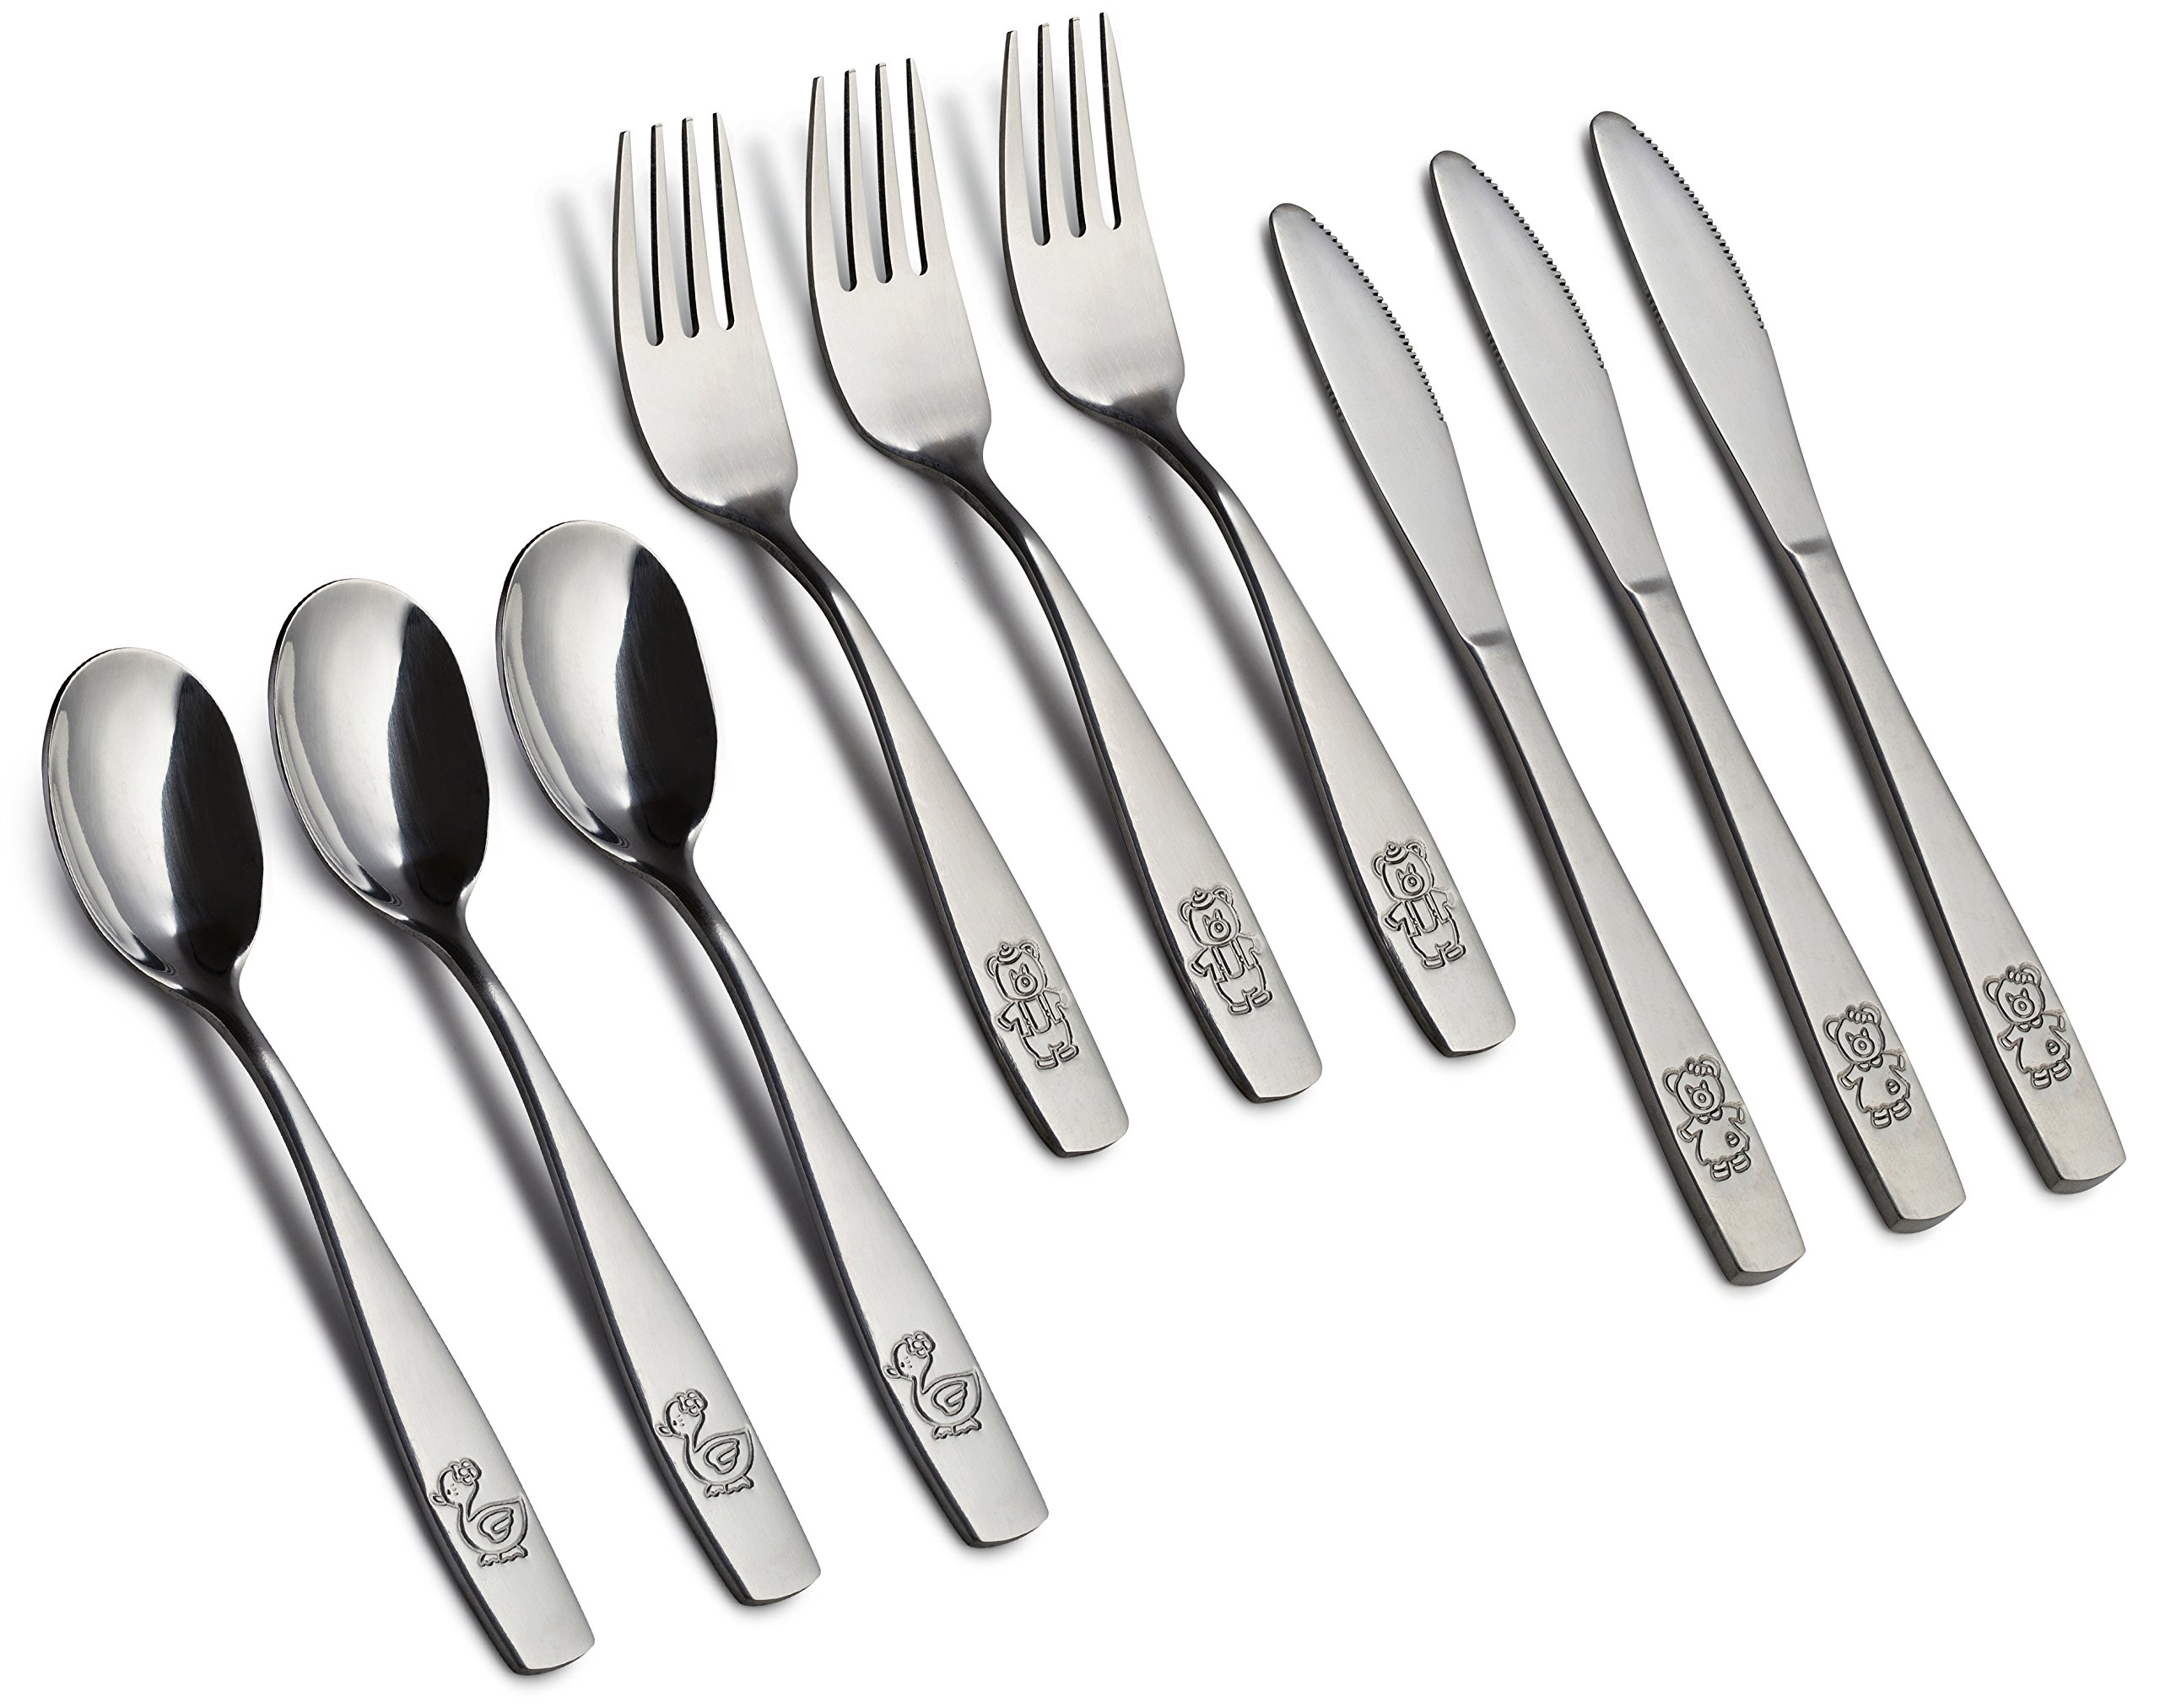 9 Piece Stainless Steel Kids Cutlery, Child and Toddler Safe Flatware, Kids Silverware, Kids Utensil Set Includes 3 Knives, 3 Forks, 3 Spoons, Total of 3 Place Settings, Ideal for Home and Preschools by GlossyEnd (Image #3)